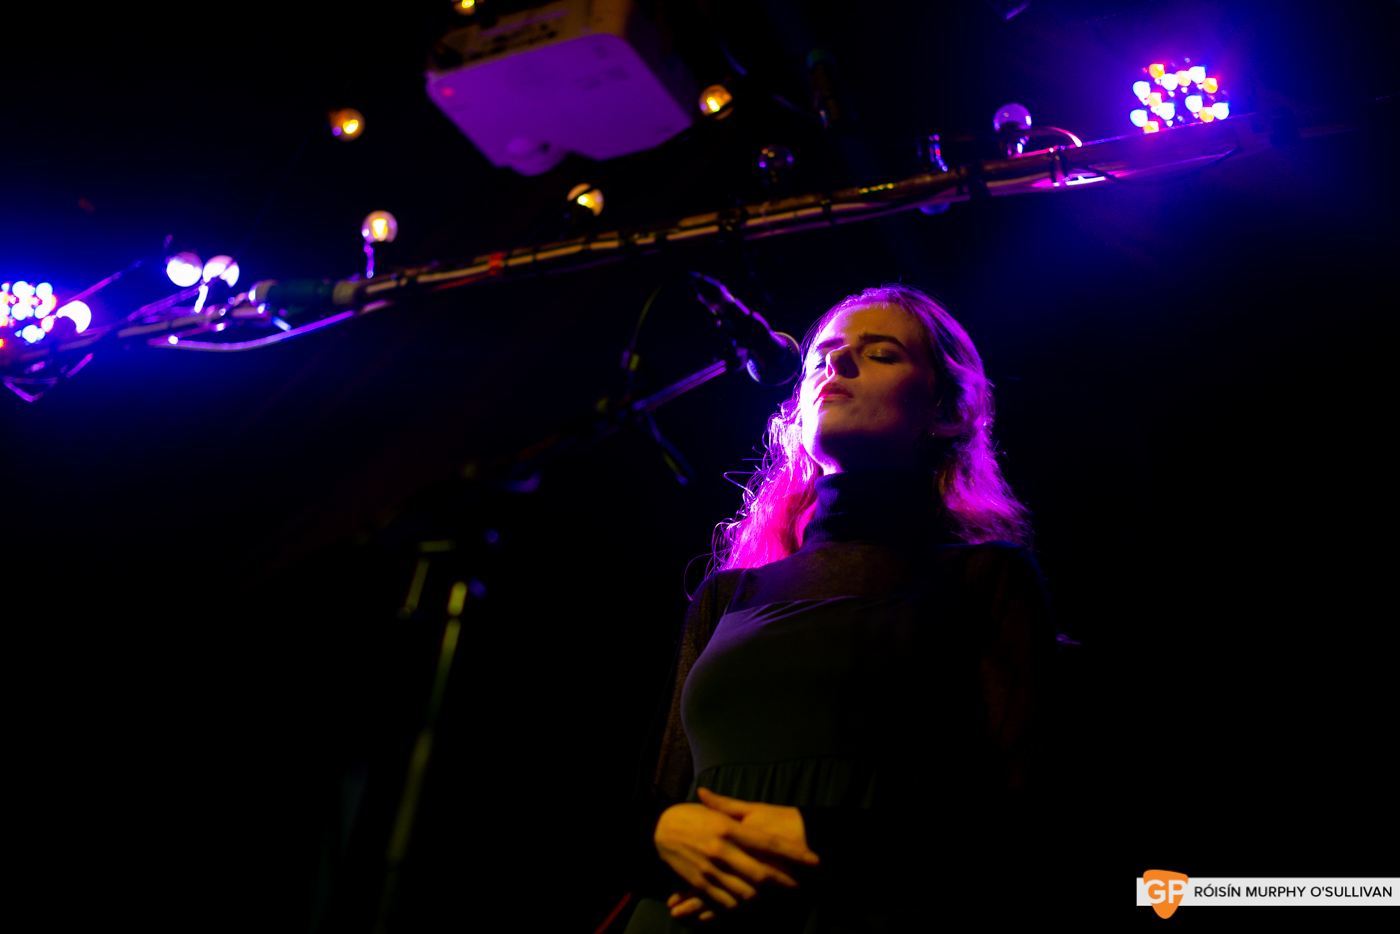 Rosie Carney in The Grand Social by Roisin Murphy O'Sullivan (1 of 12)